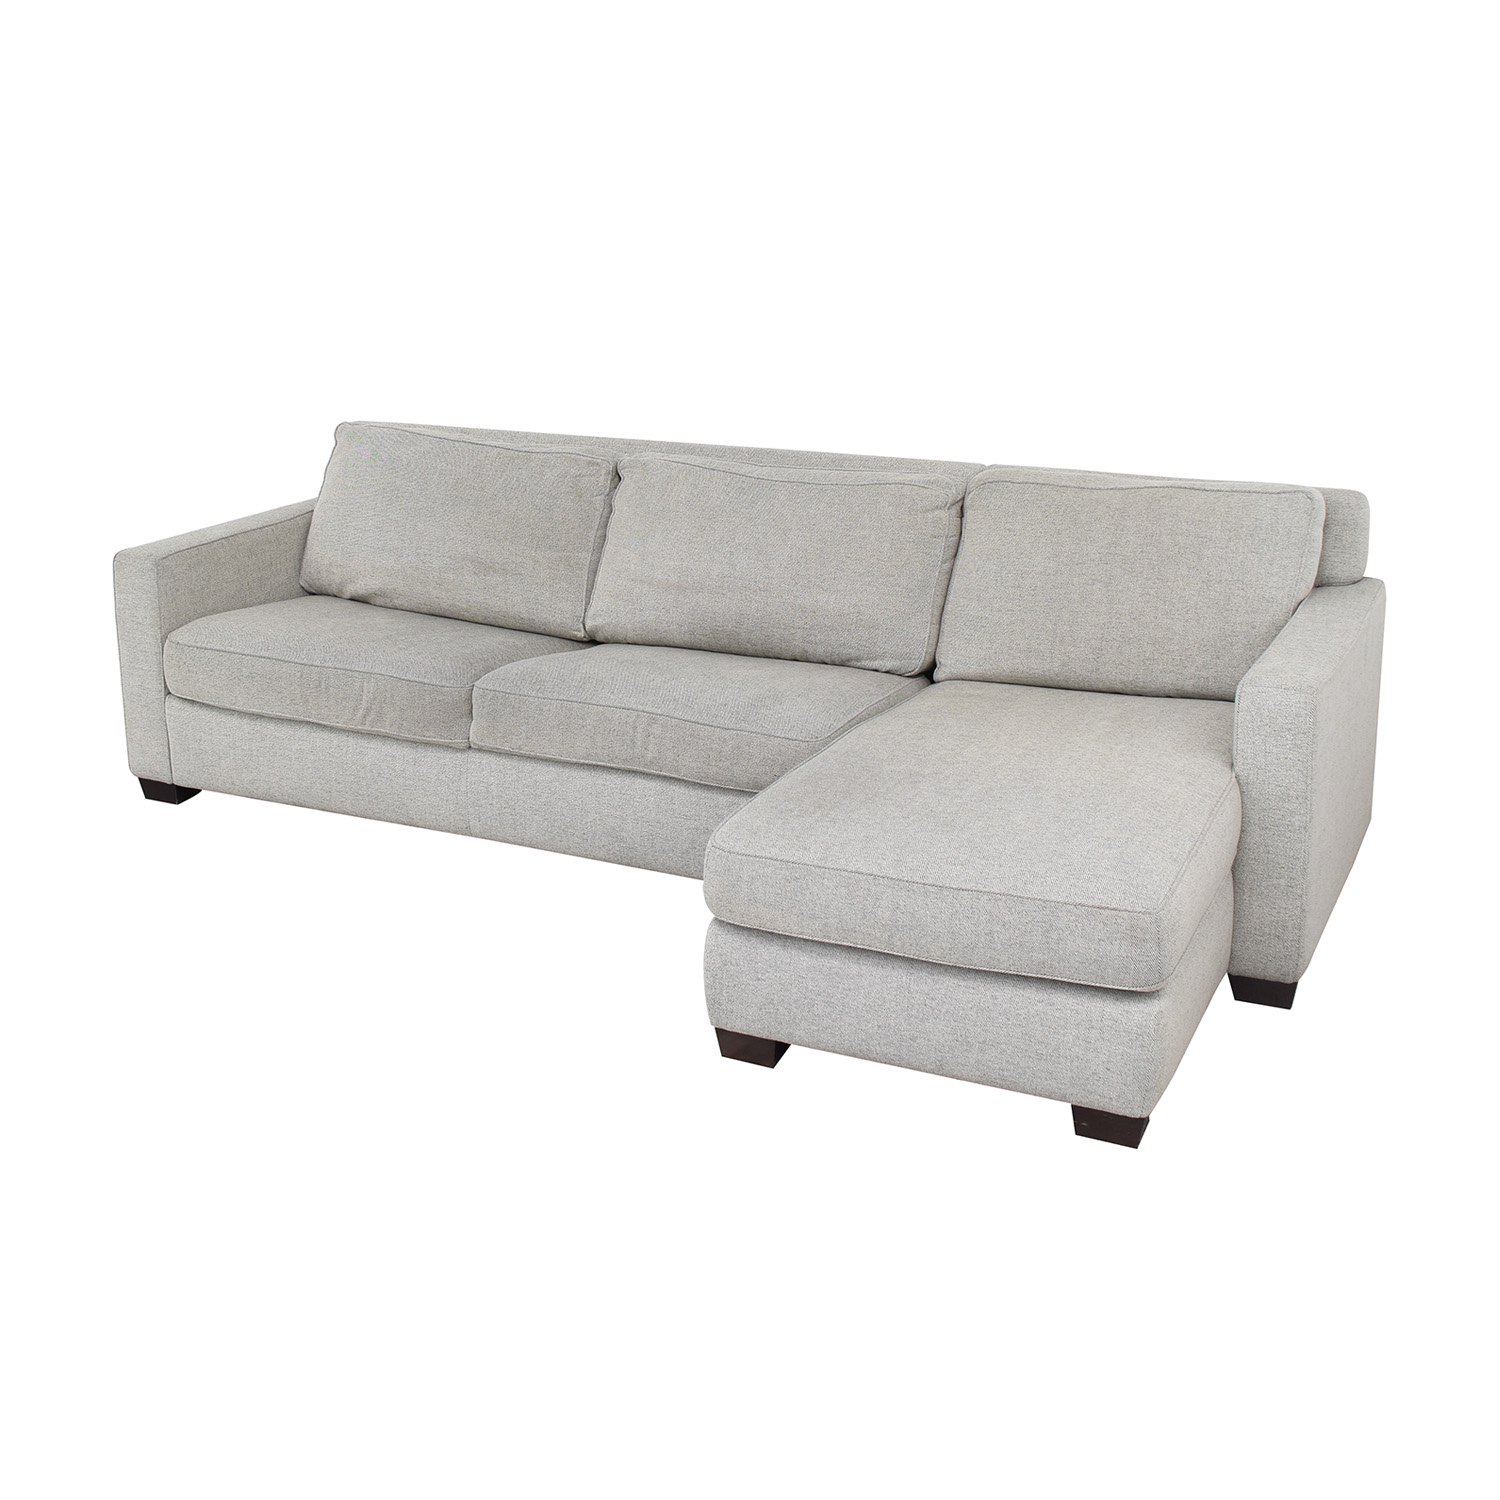 West Elm West Elm Henry Left Arm Chaise Sleeper Sectional with Storage Sofas